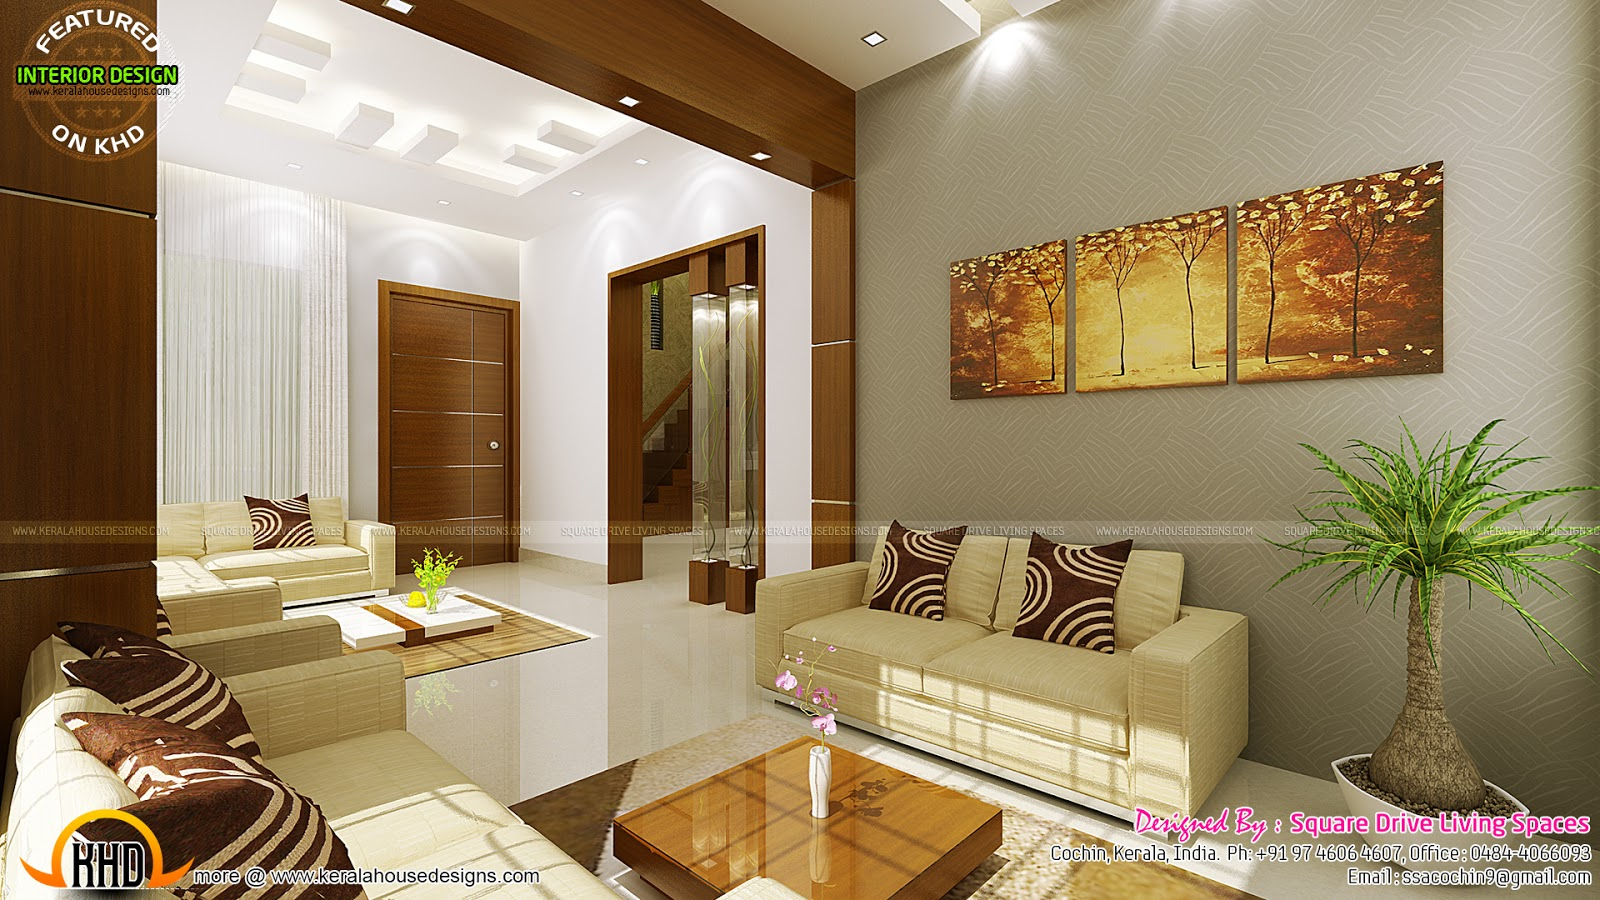 Contemporary kitchen dining and living room kerala home for Indoor design home